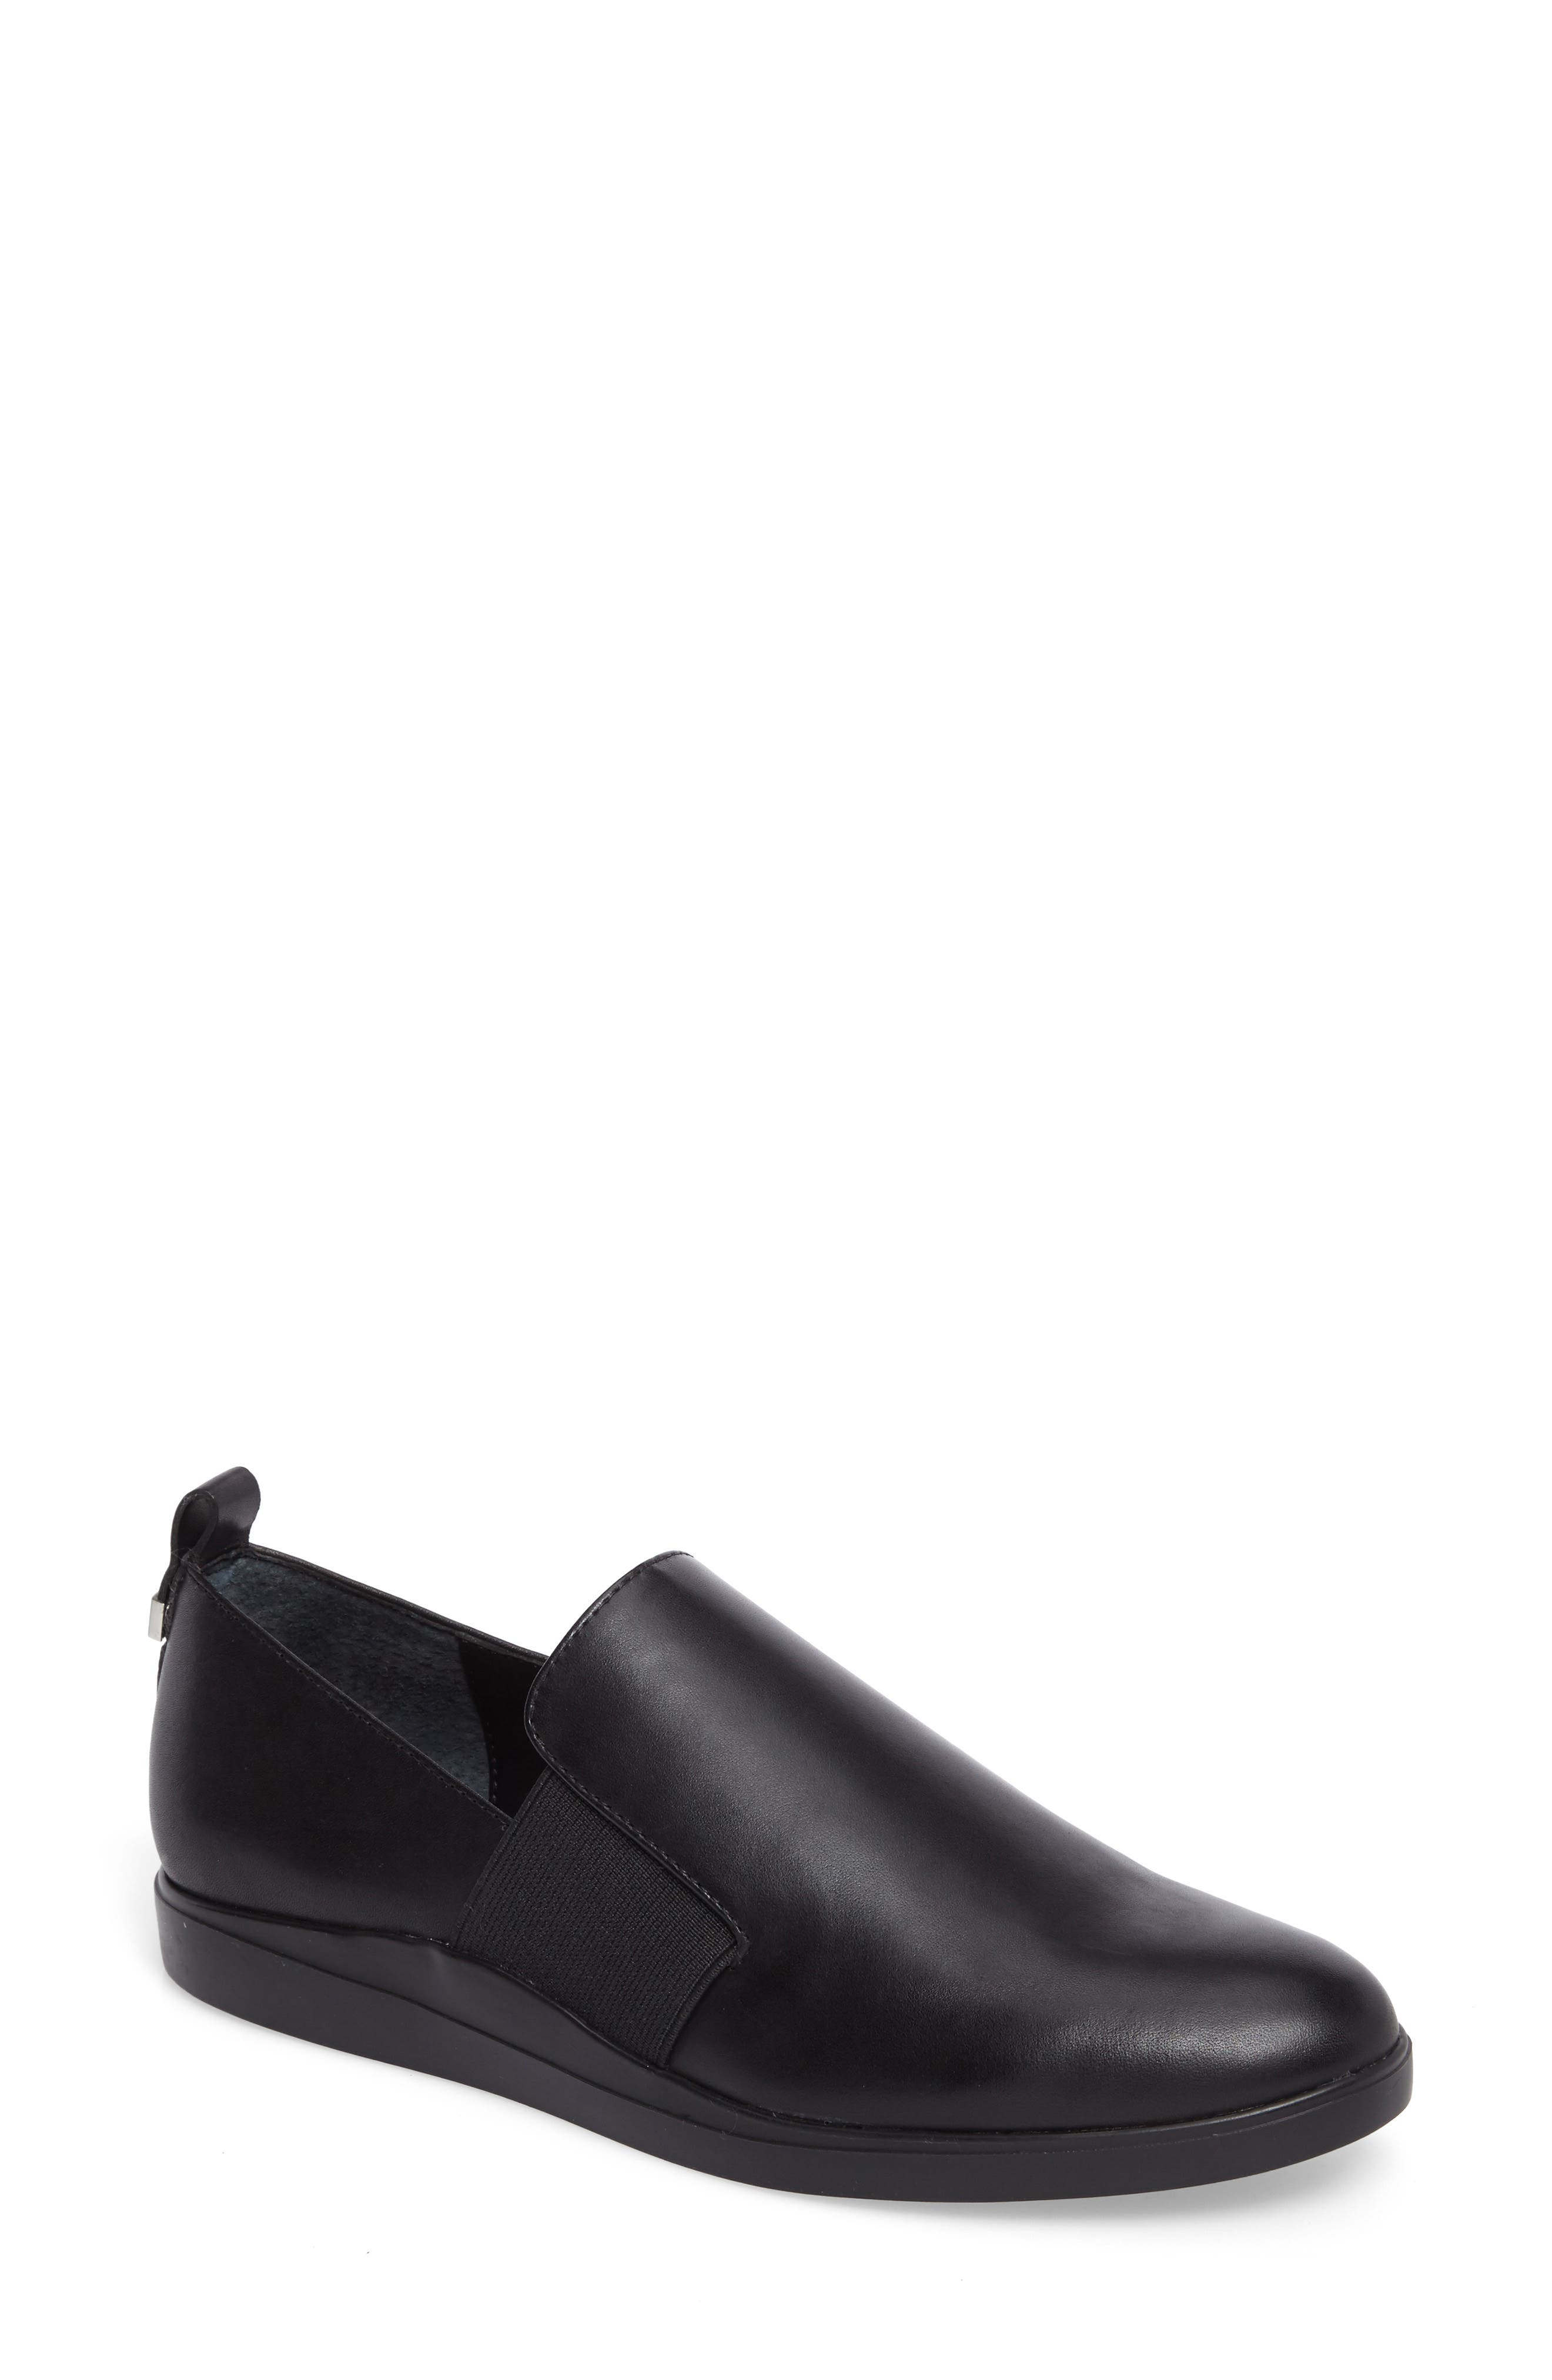 Shannin Loafer,                             Main thumbnail 1, color,                             Black Leather